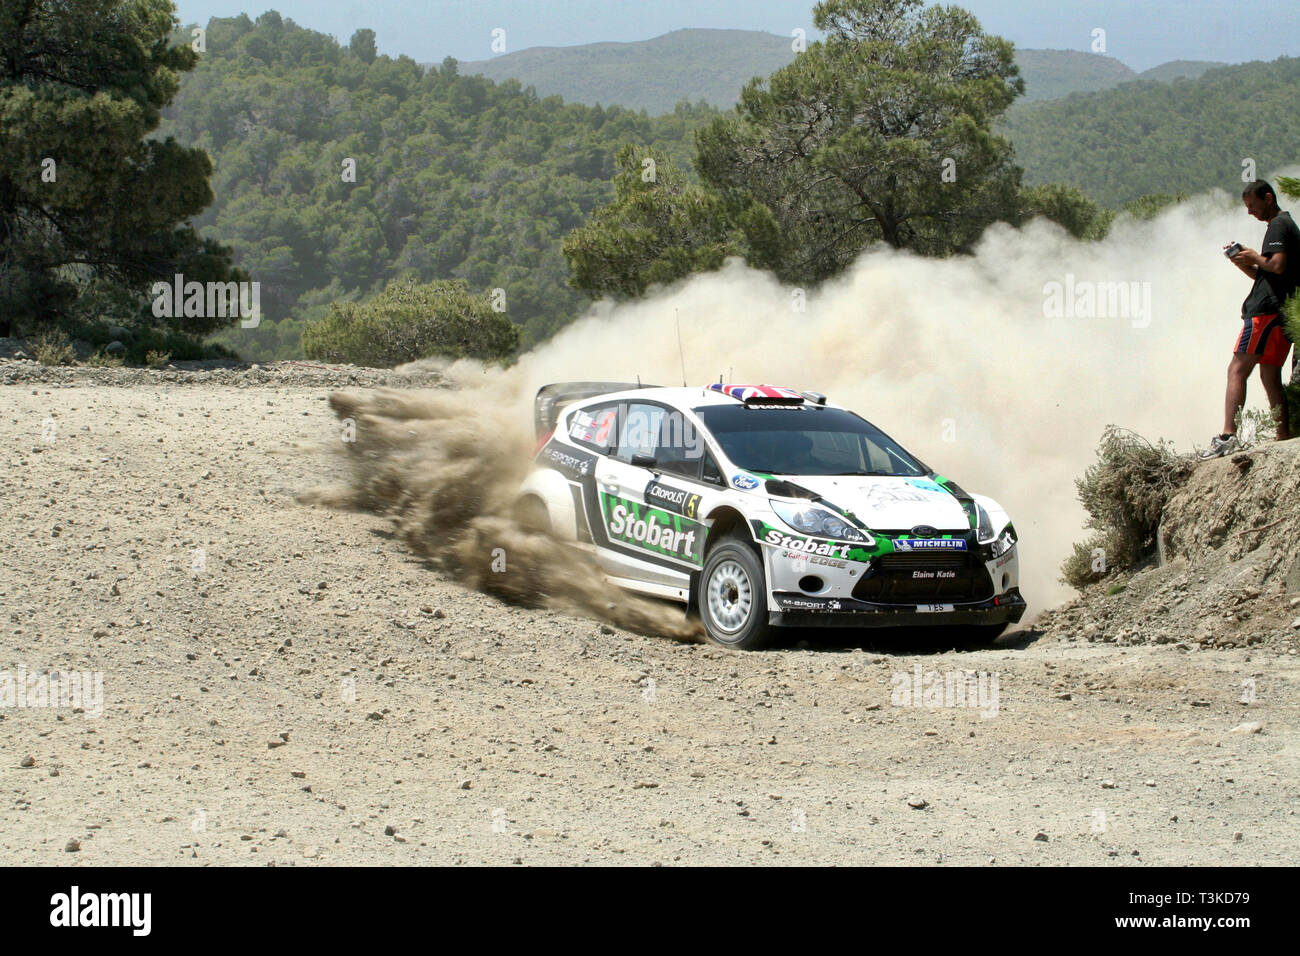 2011 Acropolis Rally, Special Stage 16 (Aghii Theodori 2). Matthew Wilson - Scott Martin, Ford Fiesta RS WRC (finished 6th) - Stock Image